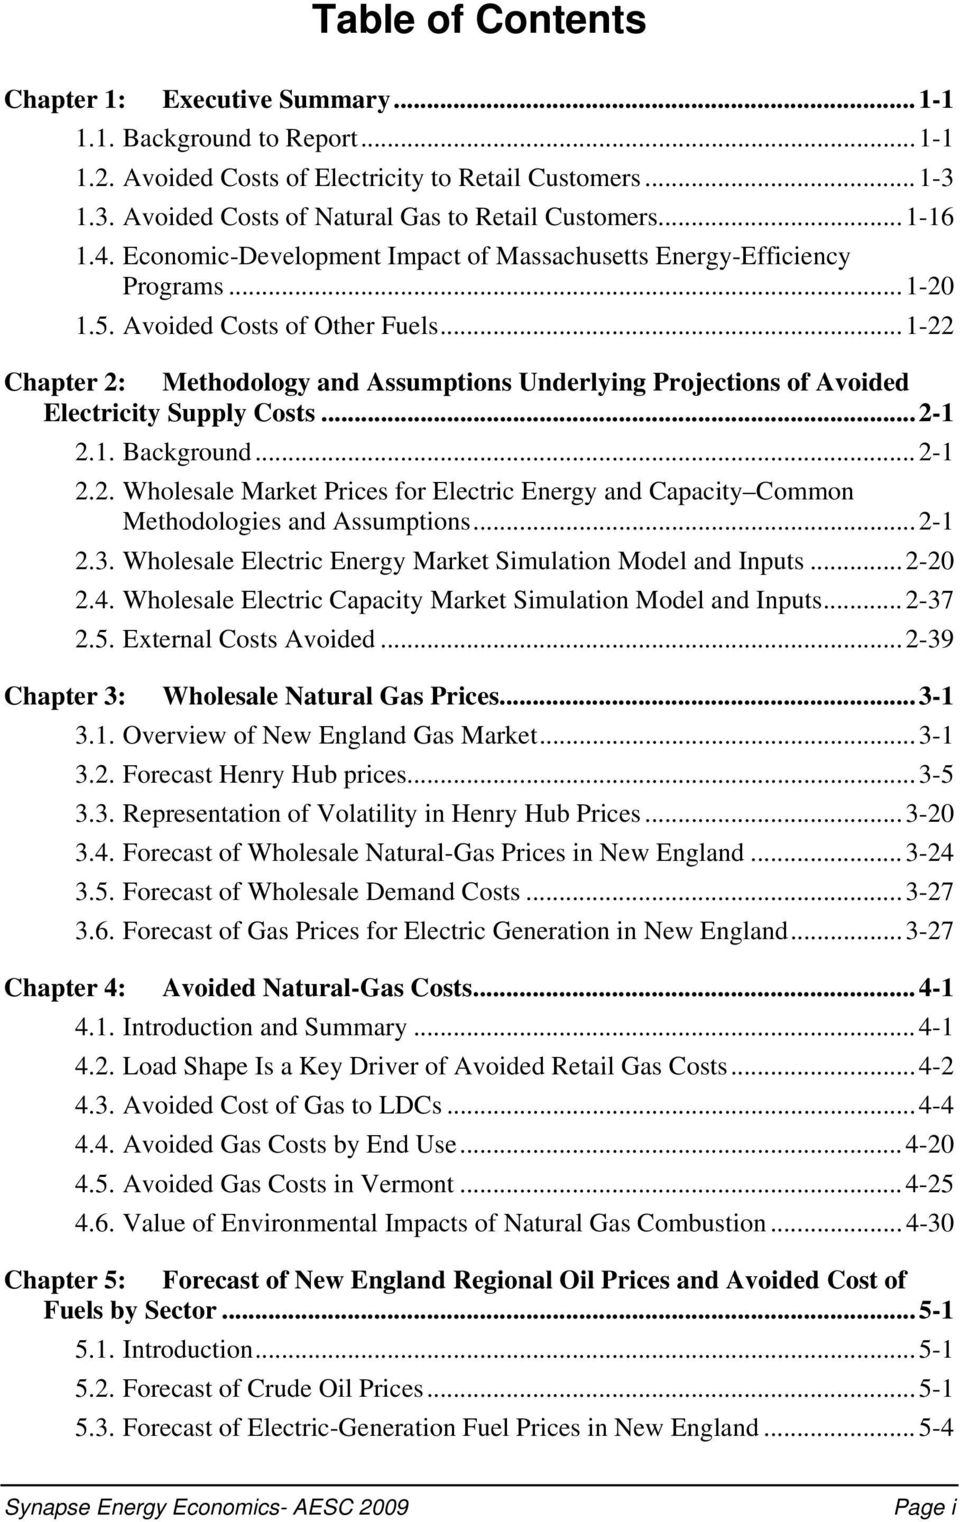 ..1-22 Chapter 2: Methodology and Assumptions Underlying Projections of Avoided Electricity Supply Costs...2-1 2.1. Background...2-1 2.2. Wholesale Market Prices for Electric Energy and Capacity Common Methodologies and Assumptions.